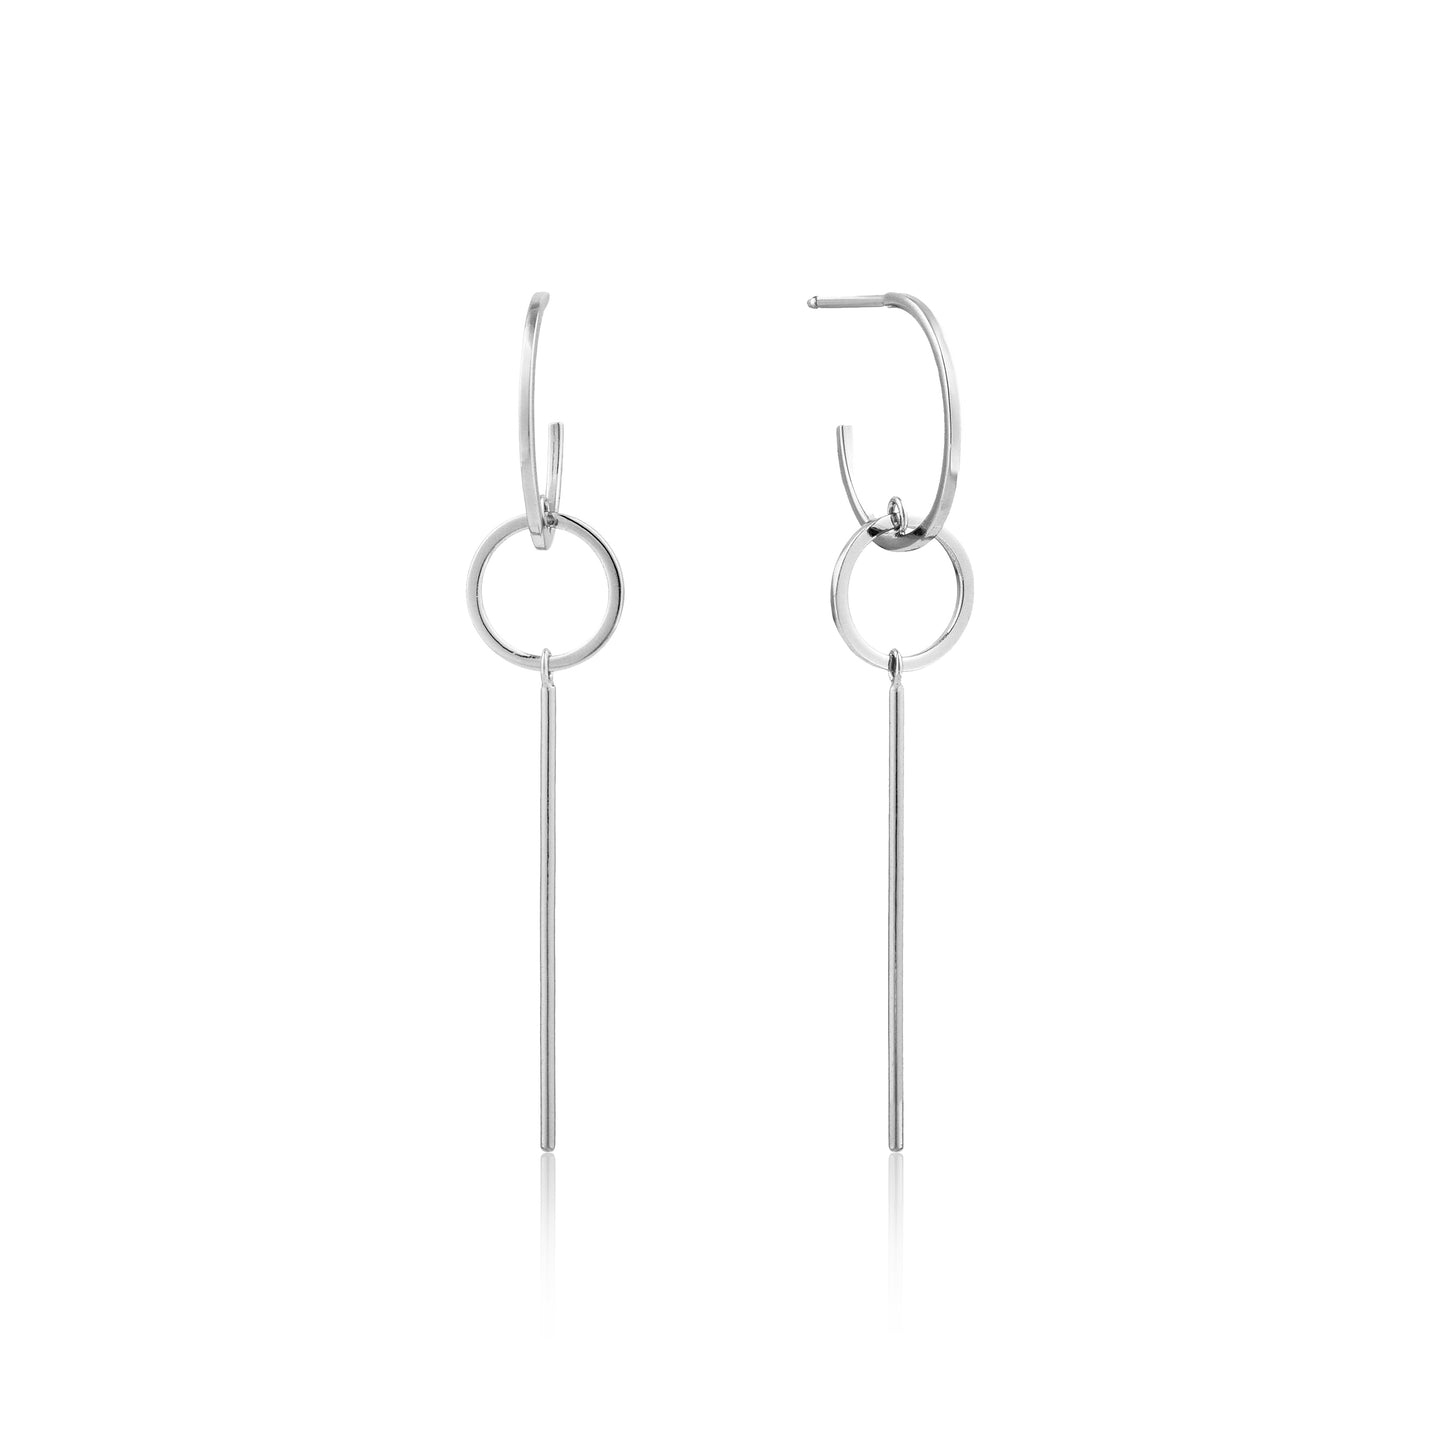 Silver Modern Solid Drop Earrings E002-03H